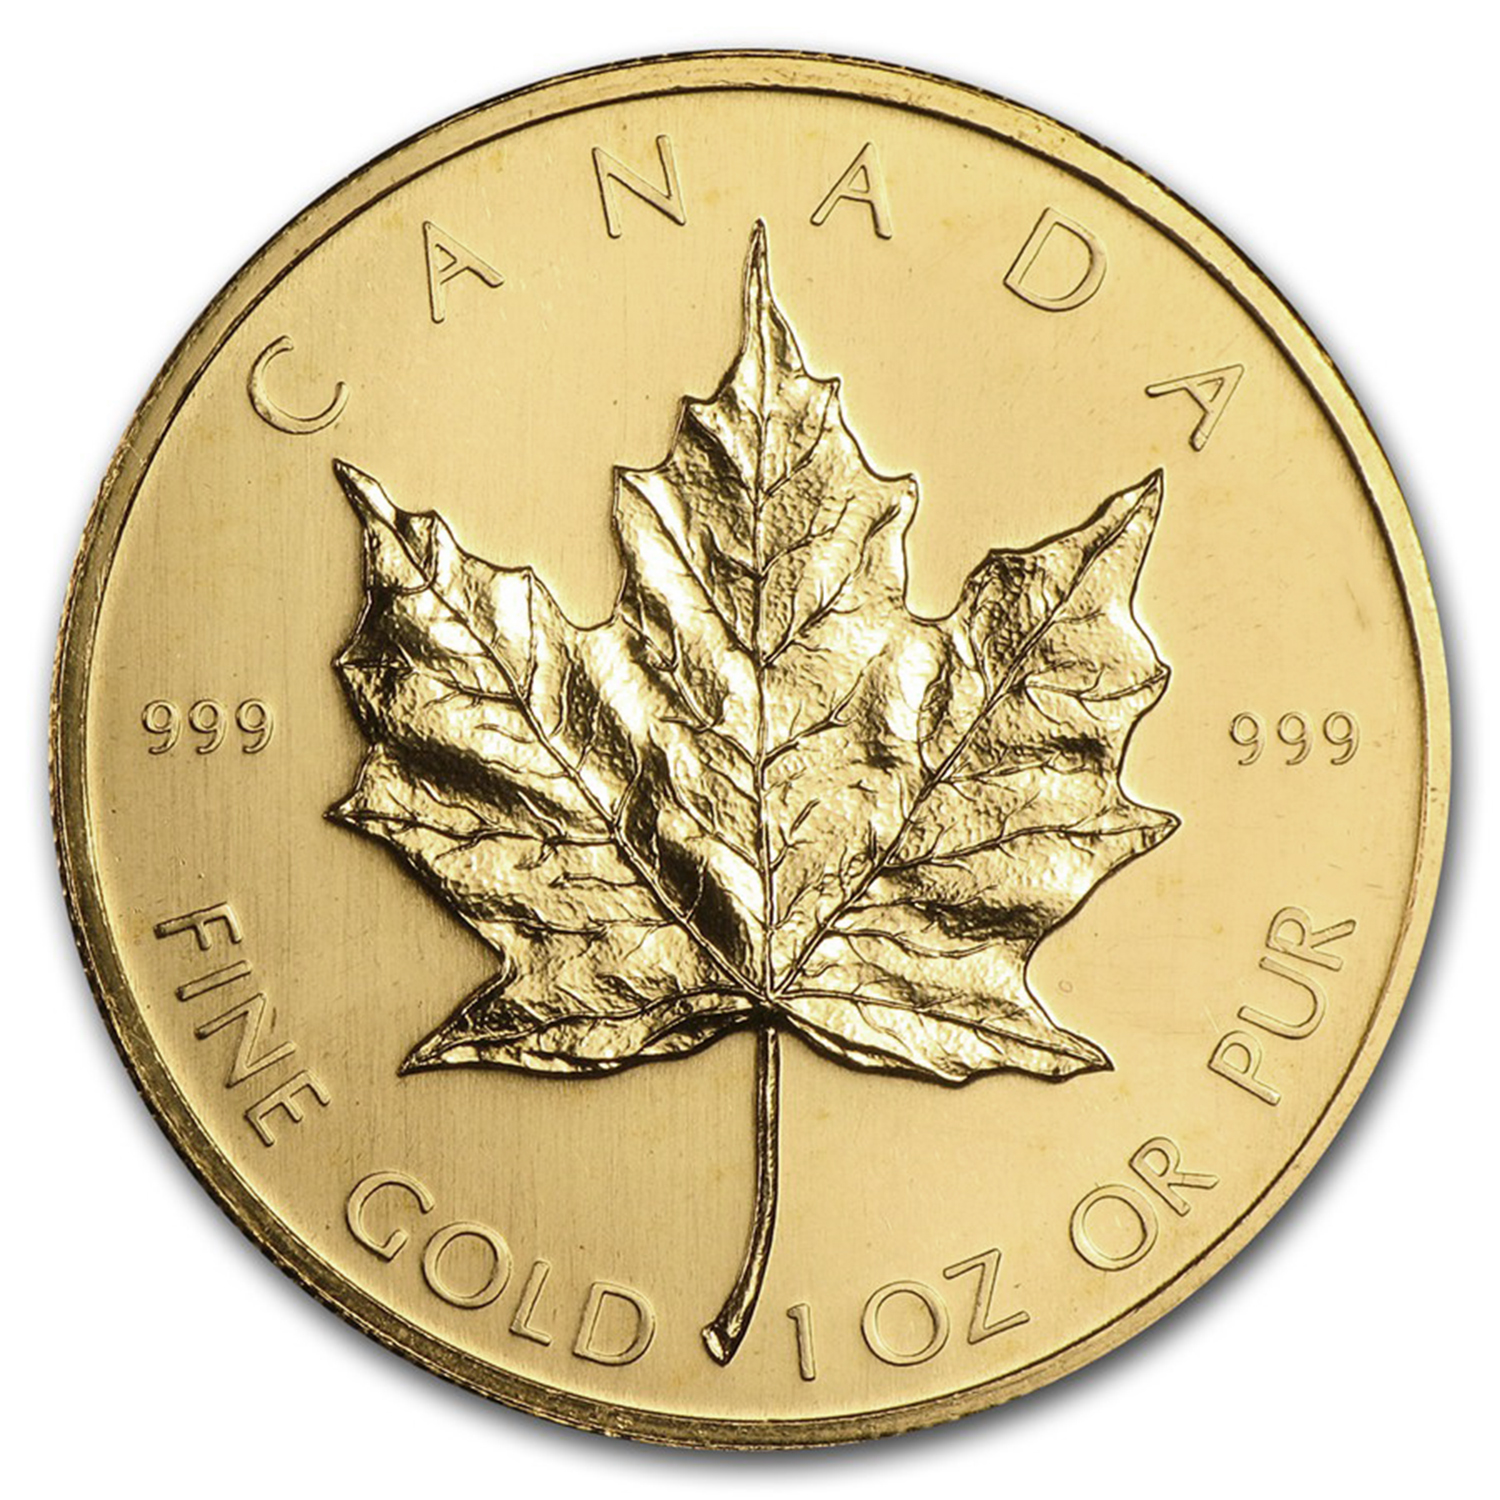 1979 1 oz Gold Canadian Maple Leaf - Brilliant Uncirculated